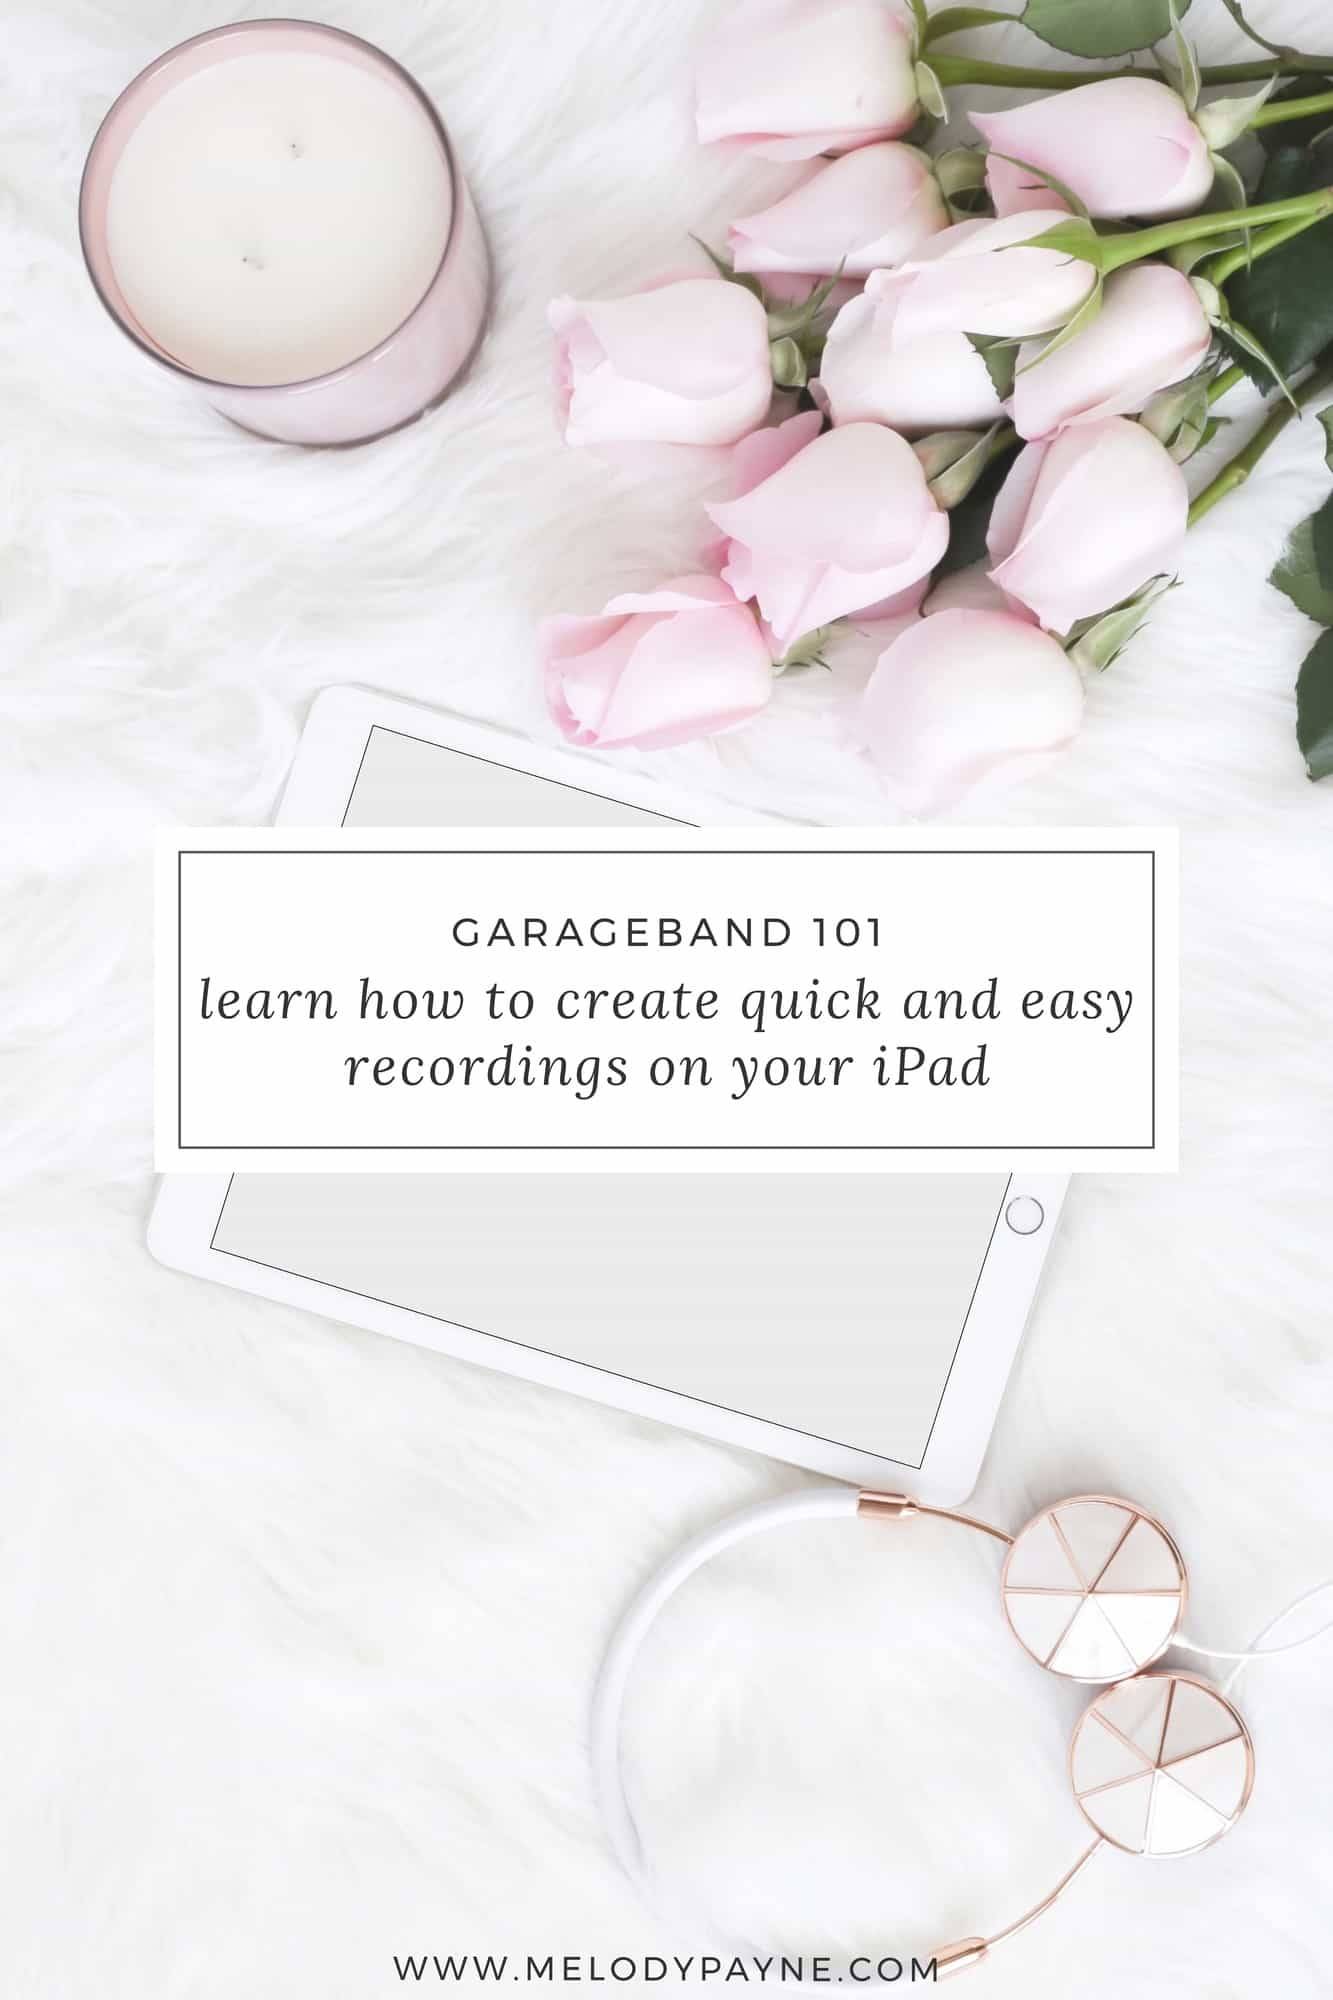 Garageband 101 how to create quick easy recordings on your ipad who loves garageband for ipad me me me i started using it recently in my studio and once i learned how easy it is to use i wanted to share with you baditri Images